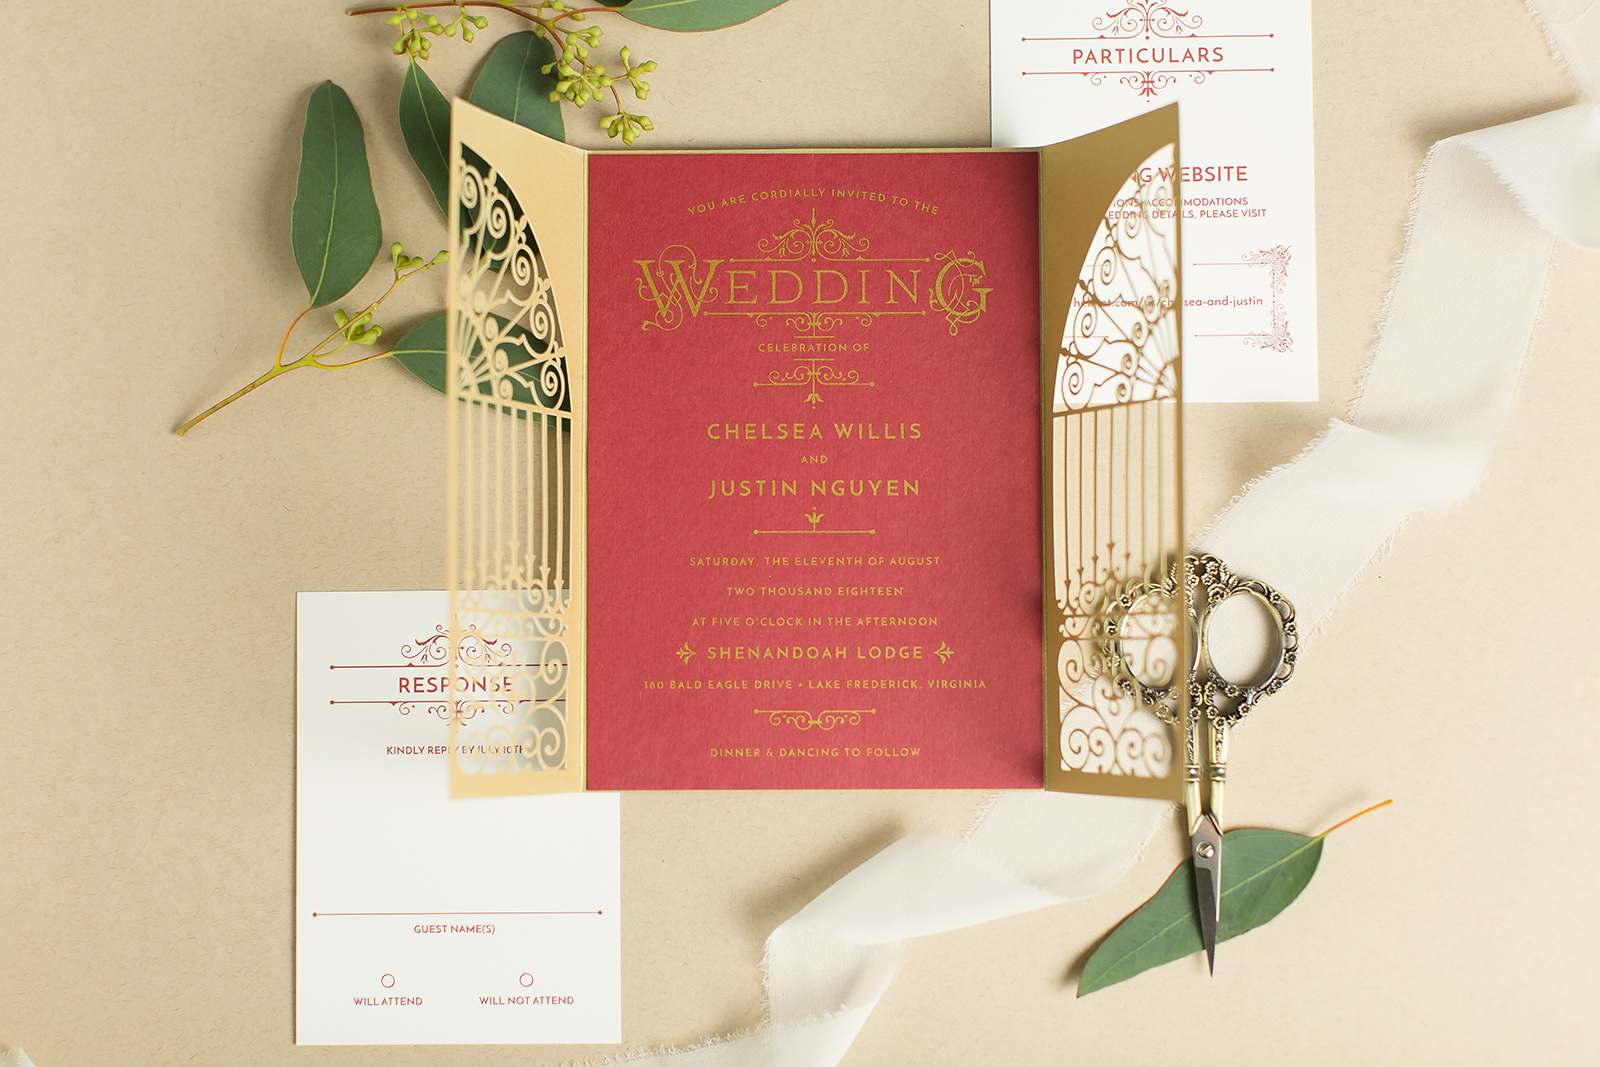 Ornate Invitation Design For A Harry Potter Themed Wedding Staccato